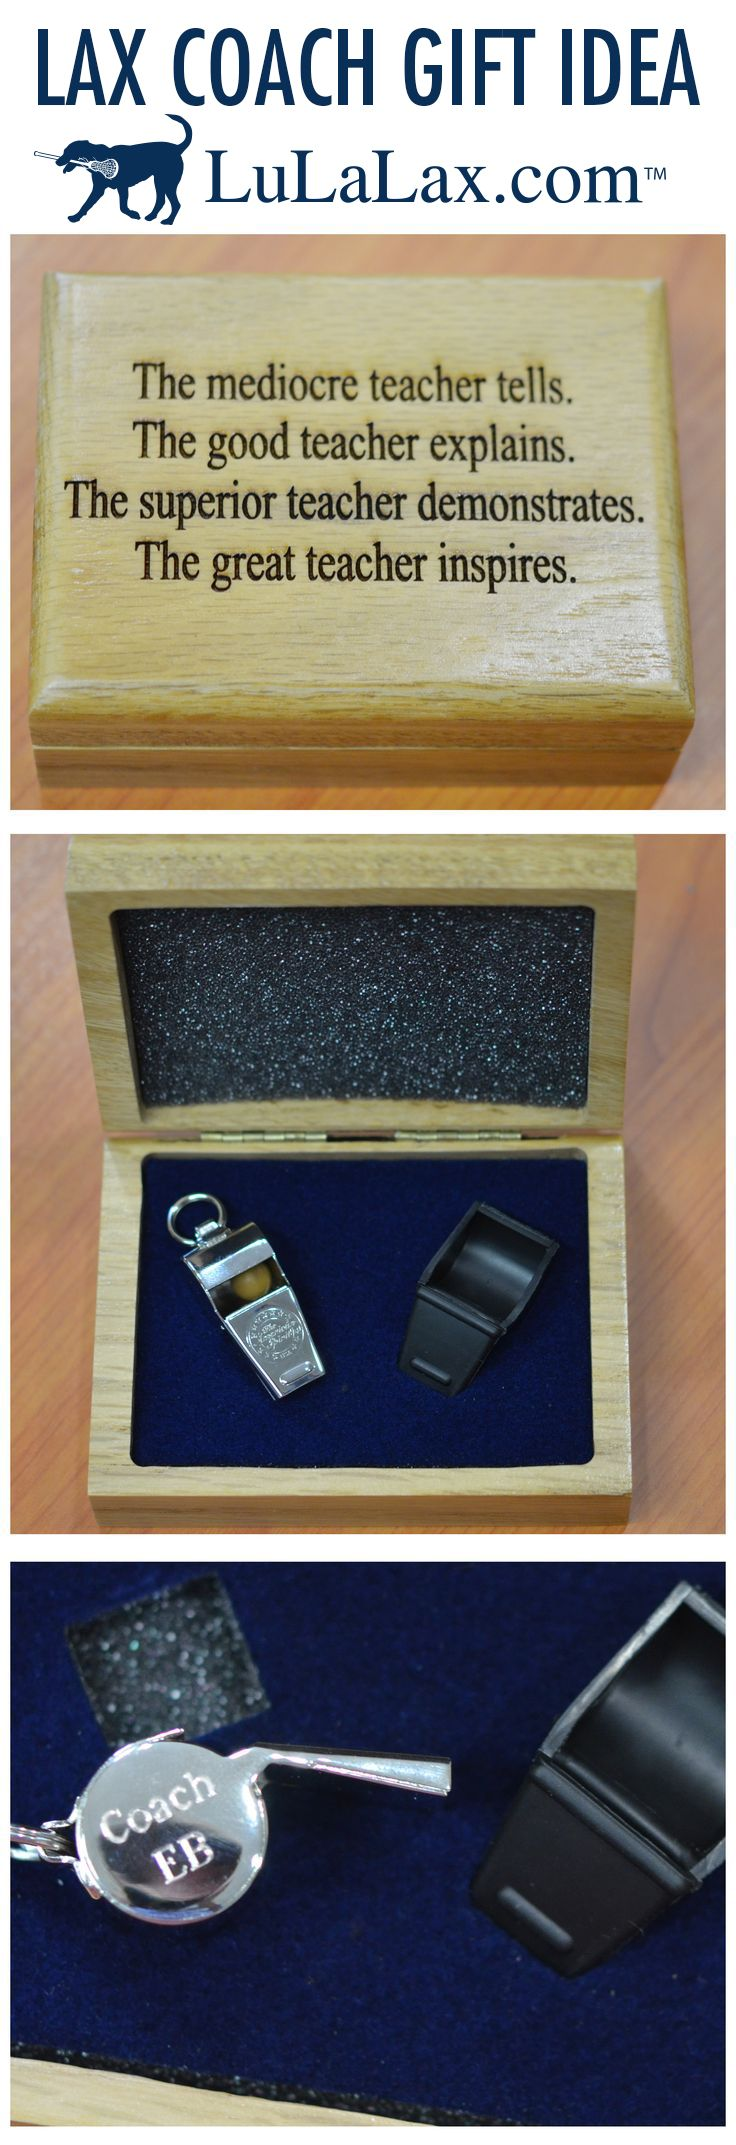 LuLaLax has great ideas for lacrosse coach gifts! How about an engraved whistle in an oak case? Love it! LuLaLax.com